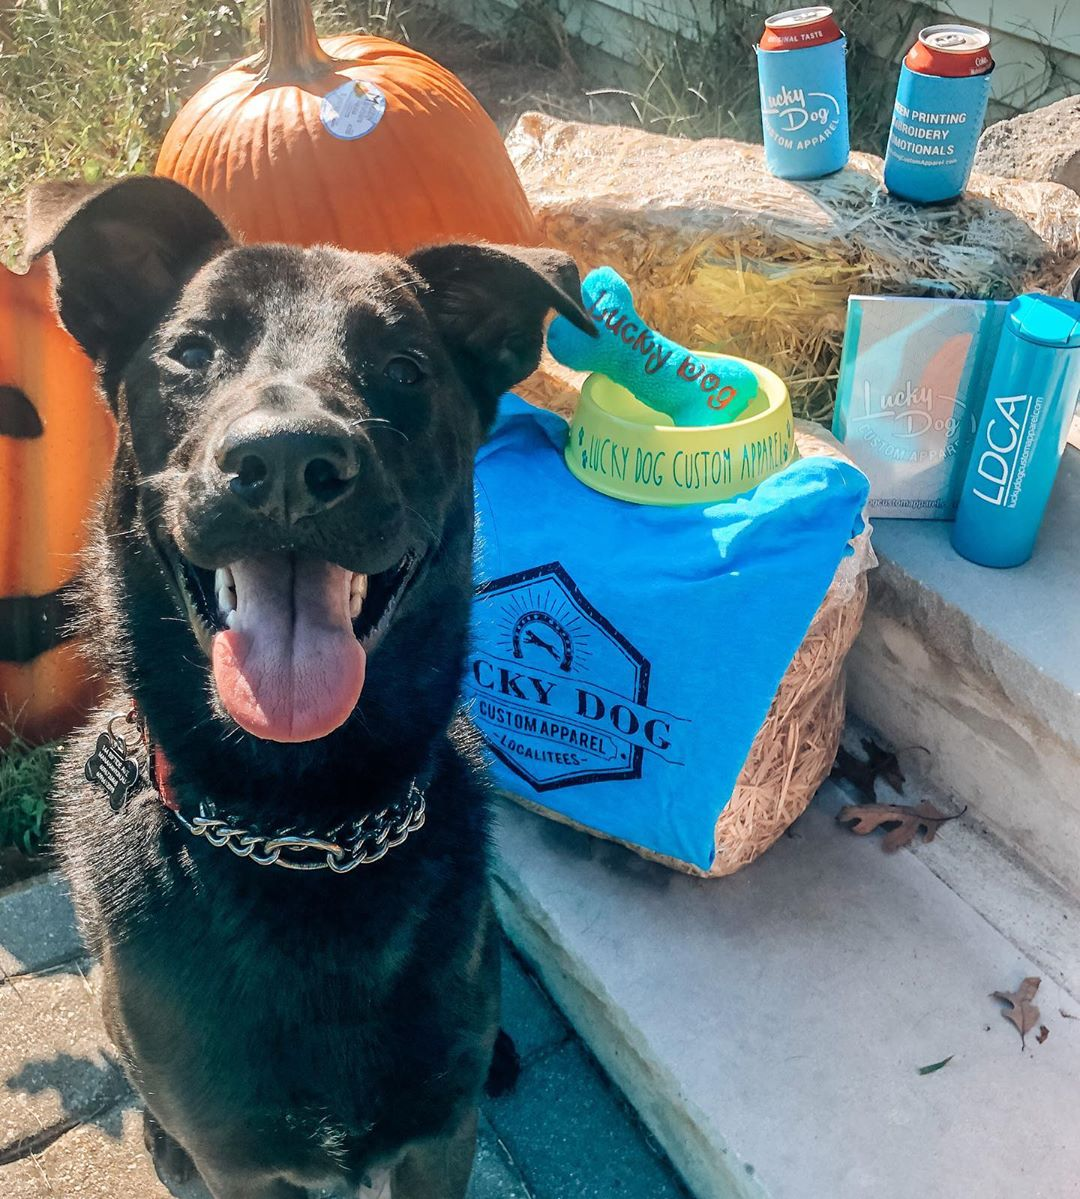 LBI Thanks to  for choosing me as the October Dog of the month! Lucky Dog custom app…